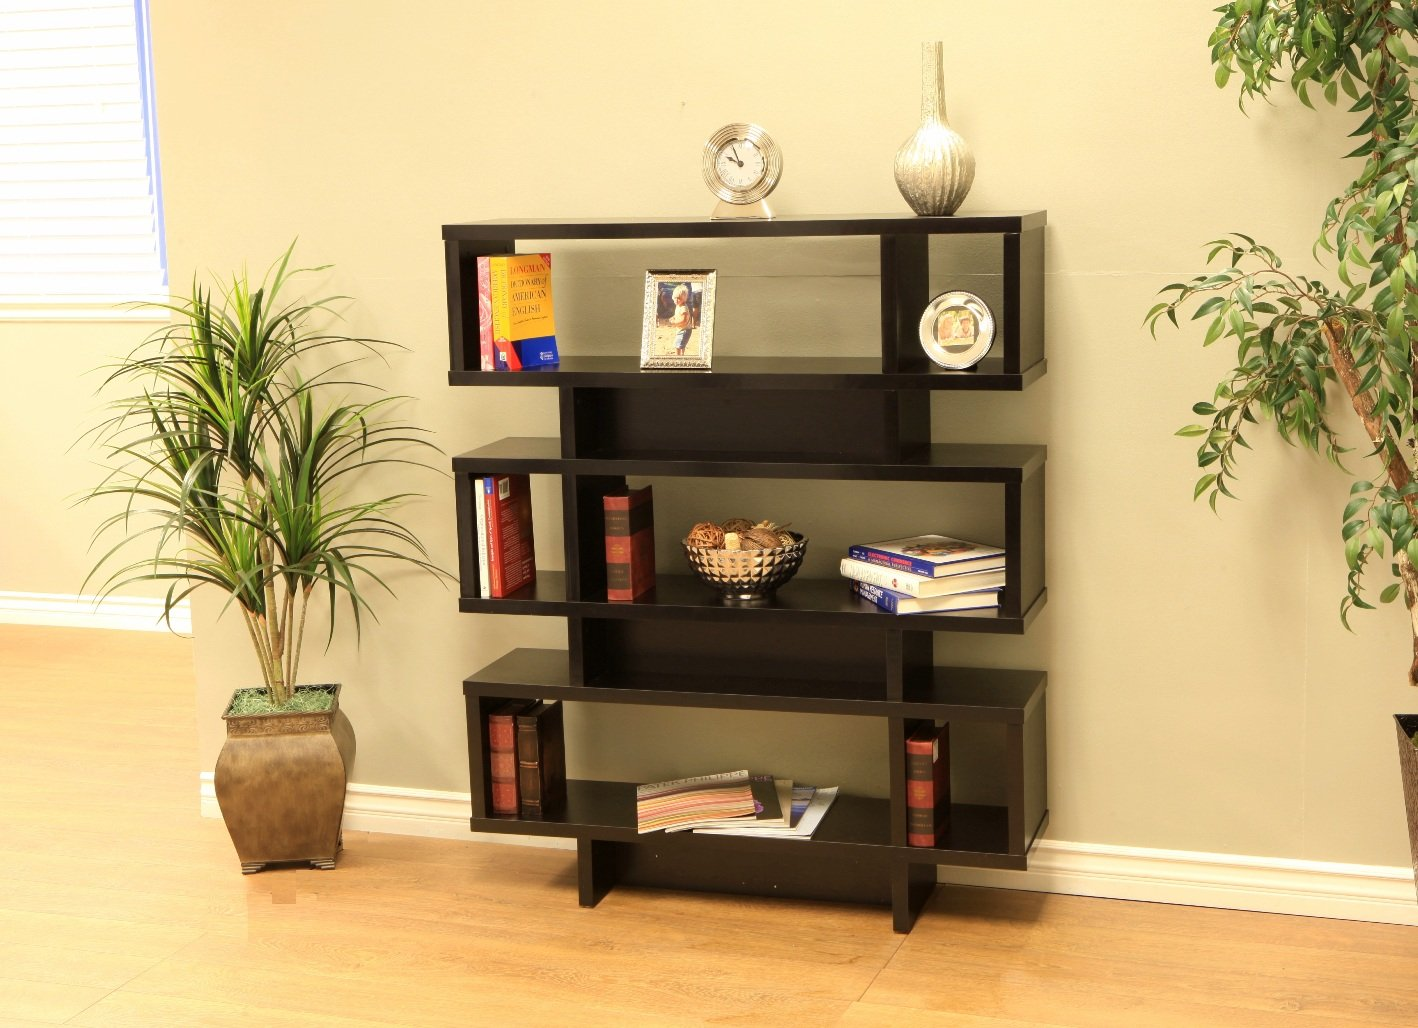 Frenchi Home Furnishing Tier Display Cabinet/Bookcase by Frenchi Home Furnishing (Image #2)